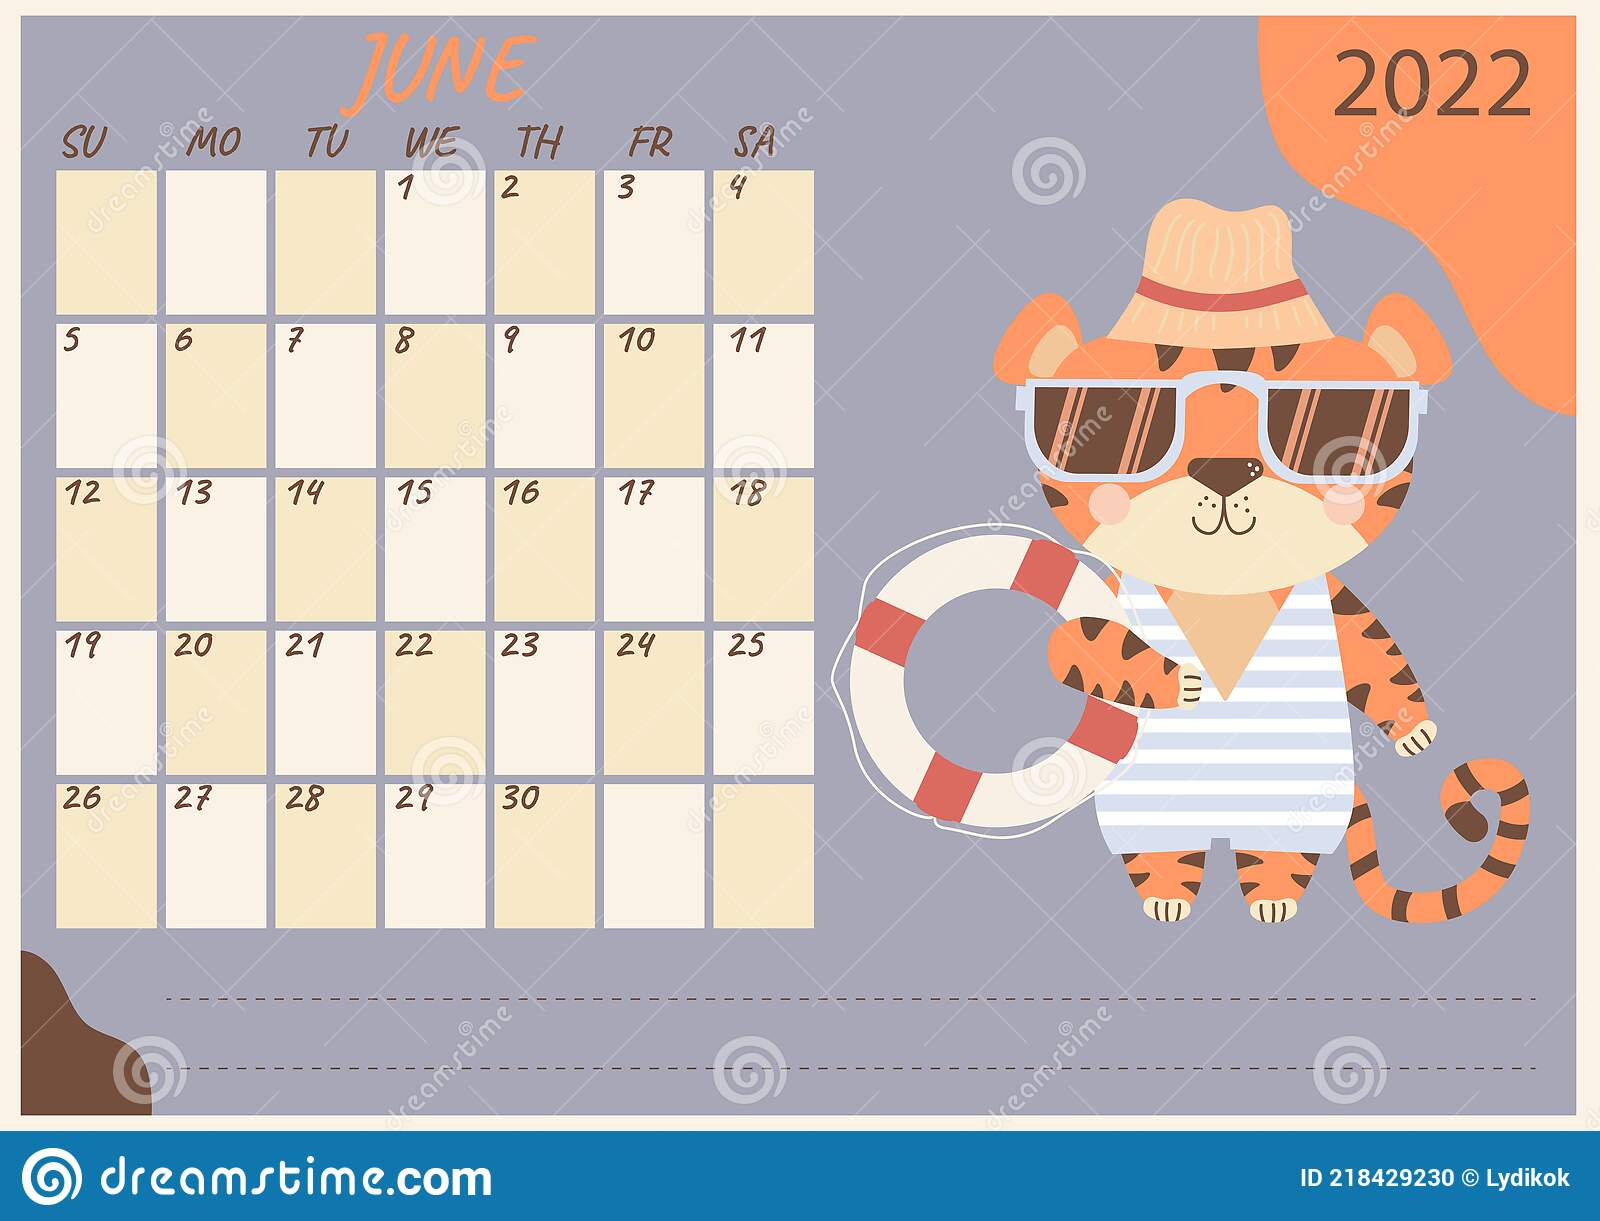 June 2022 Calendar Cute.Planner Calendar For June 2022 Cute Tiger Cub In Sunglasses Striped Swimsuit Beach Hat And Lifebuoy Year Of The Stock Vector Illustration Of 2022 Poster 218429230